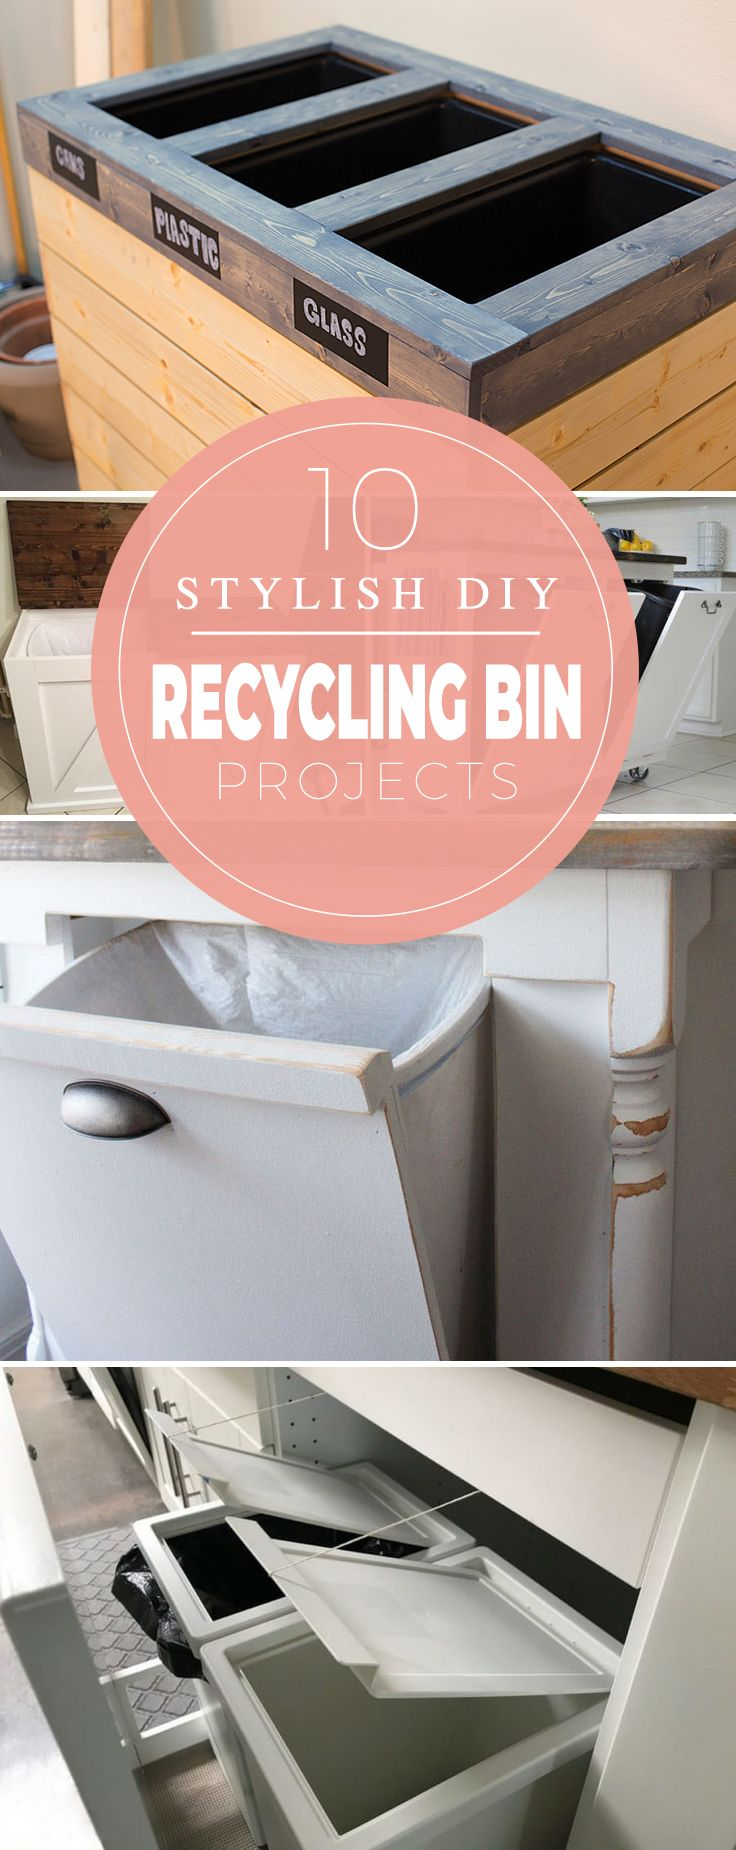 44 best Recycling images on Pinterest | Organization ideas ...